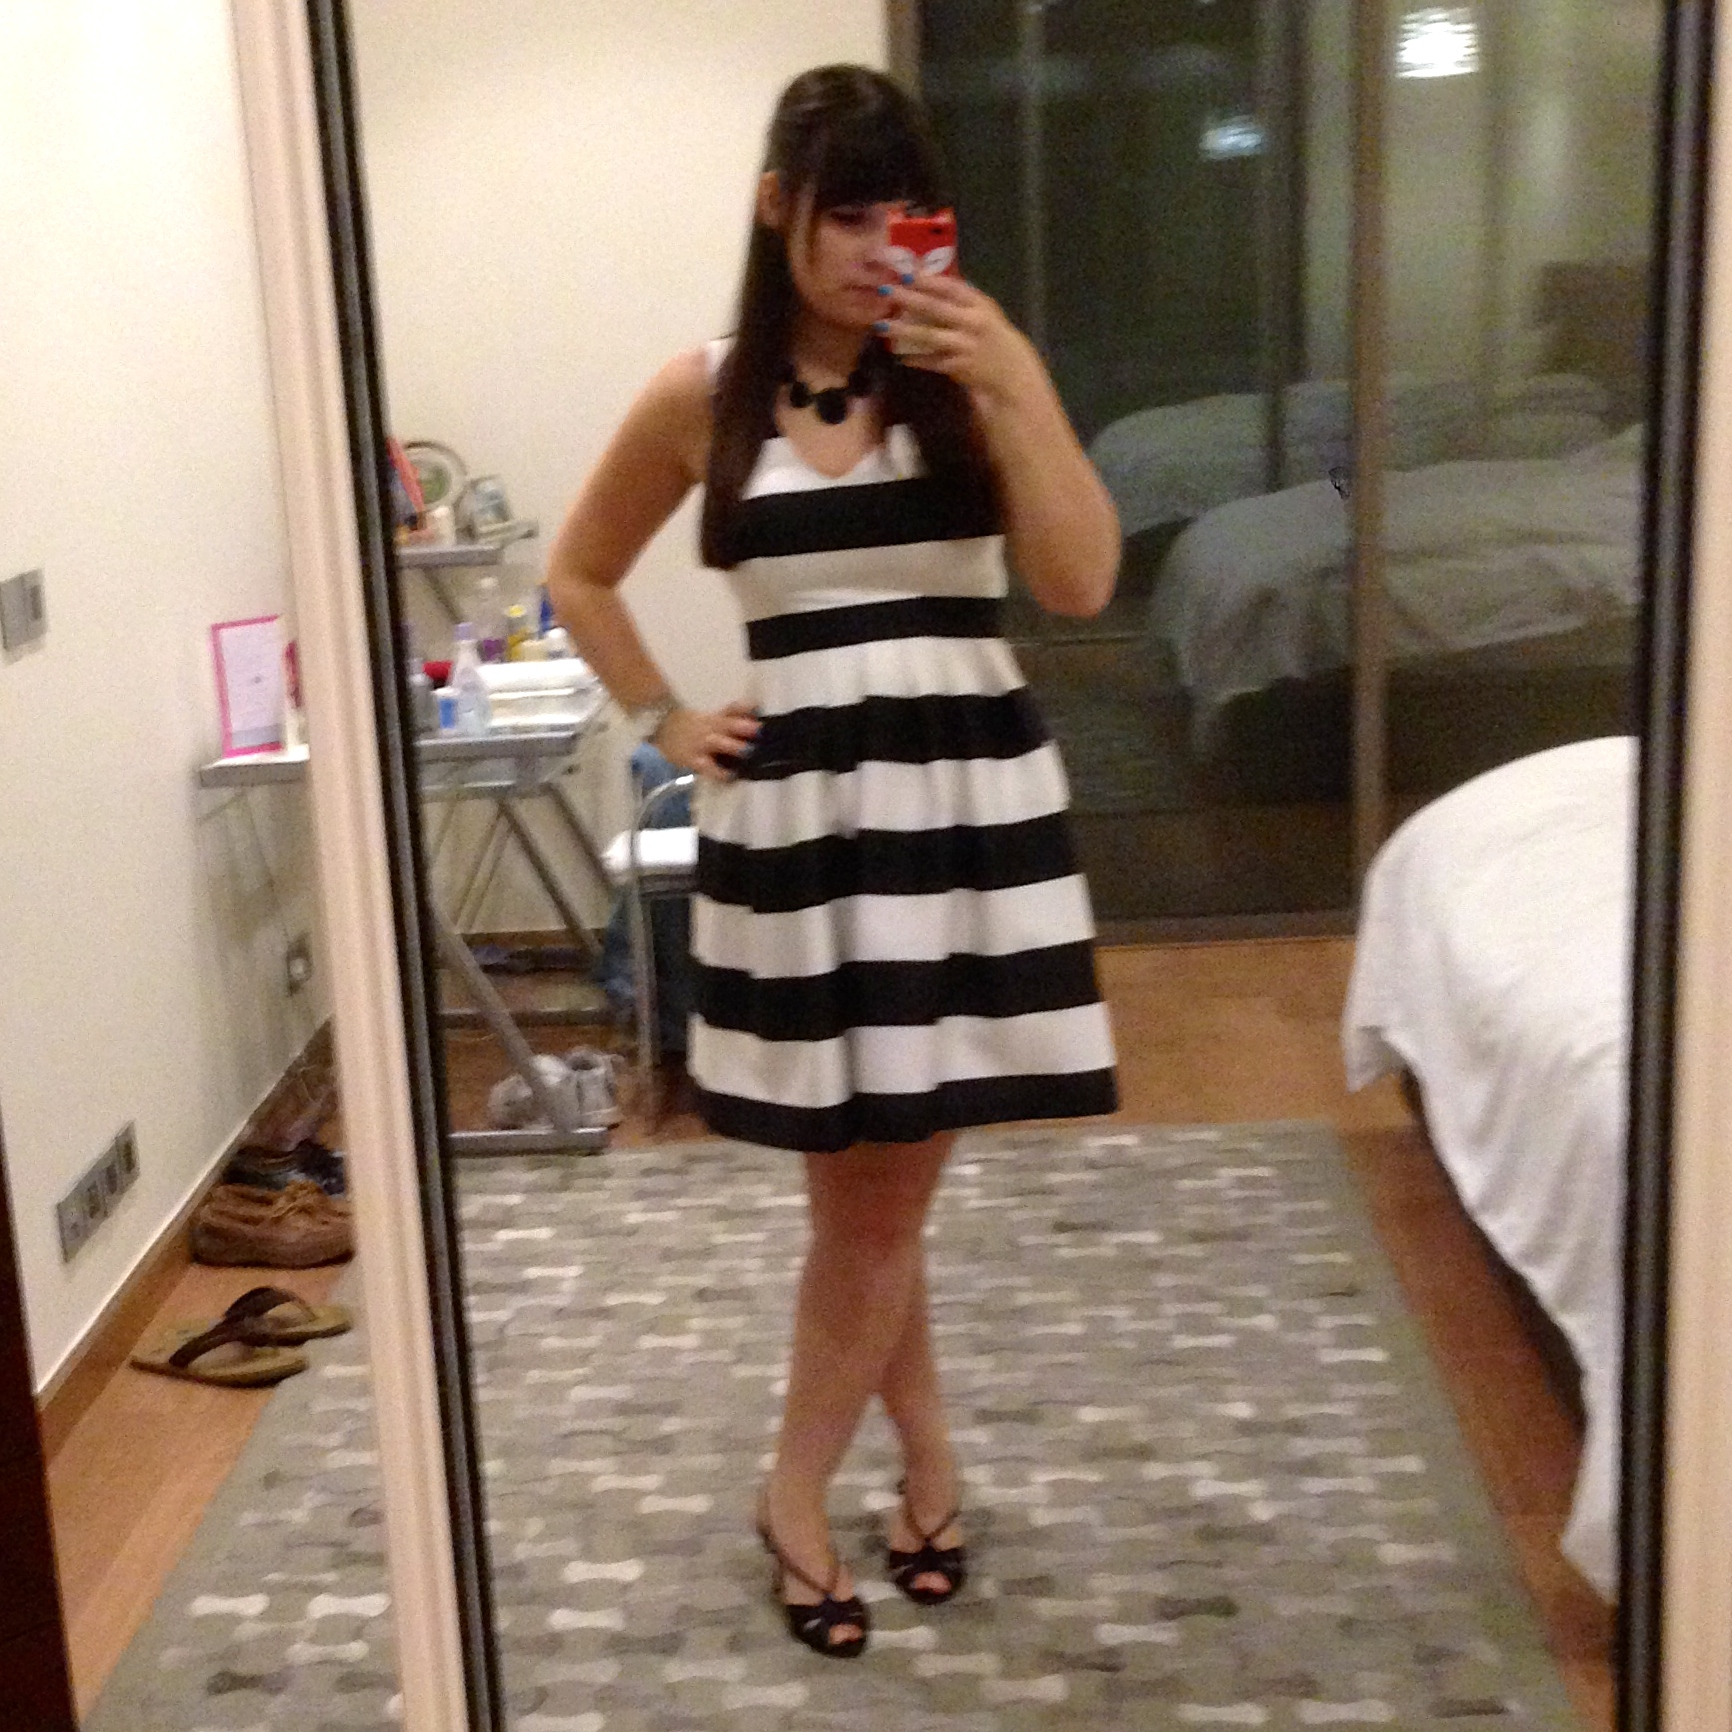 Outfit post: What I Wore to Our Fancy Family Dinner